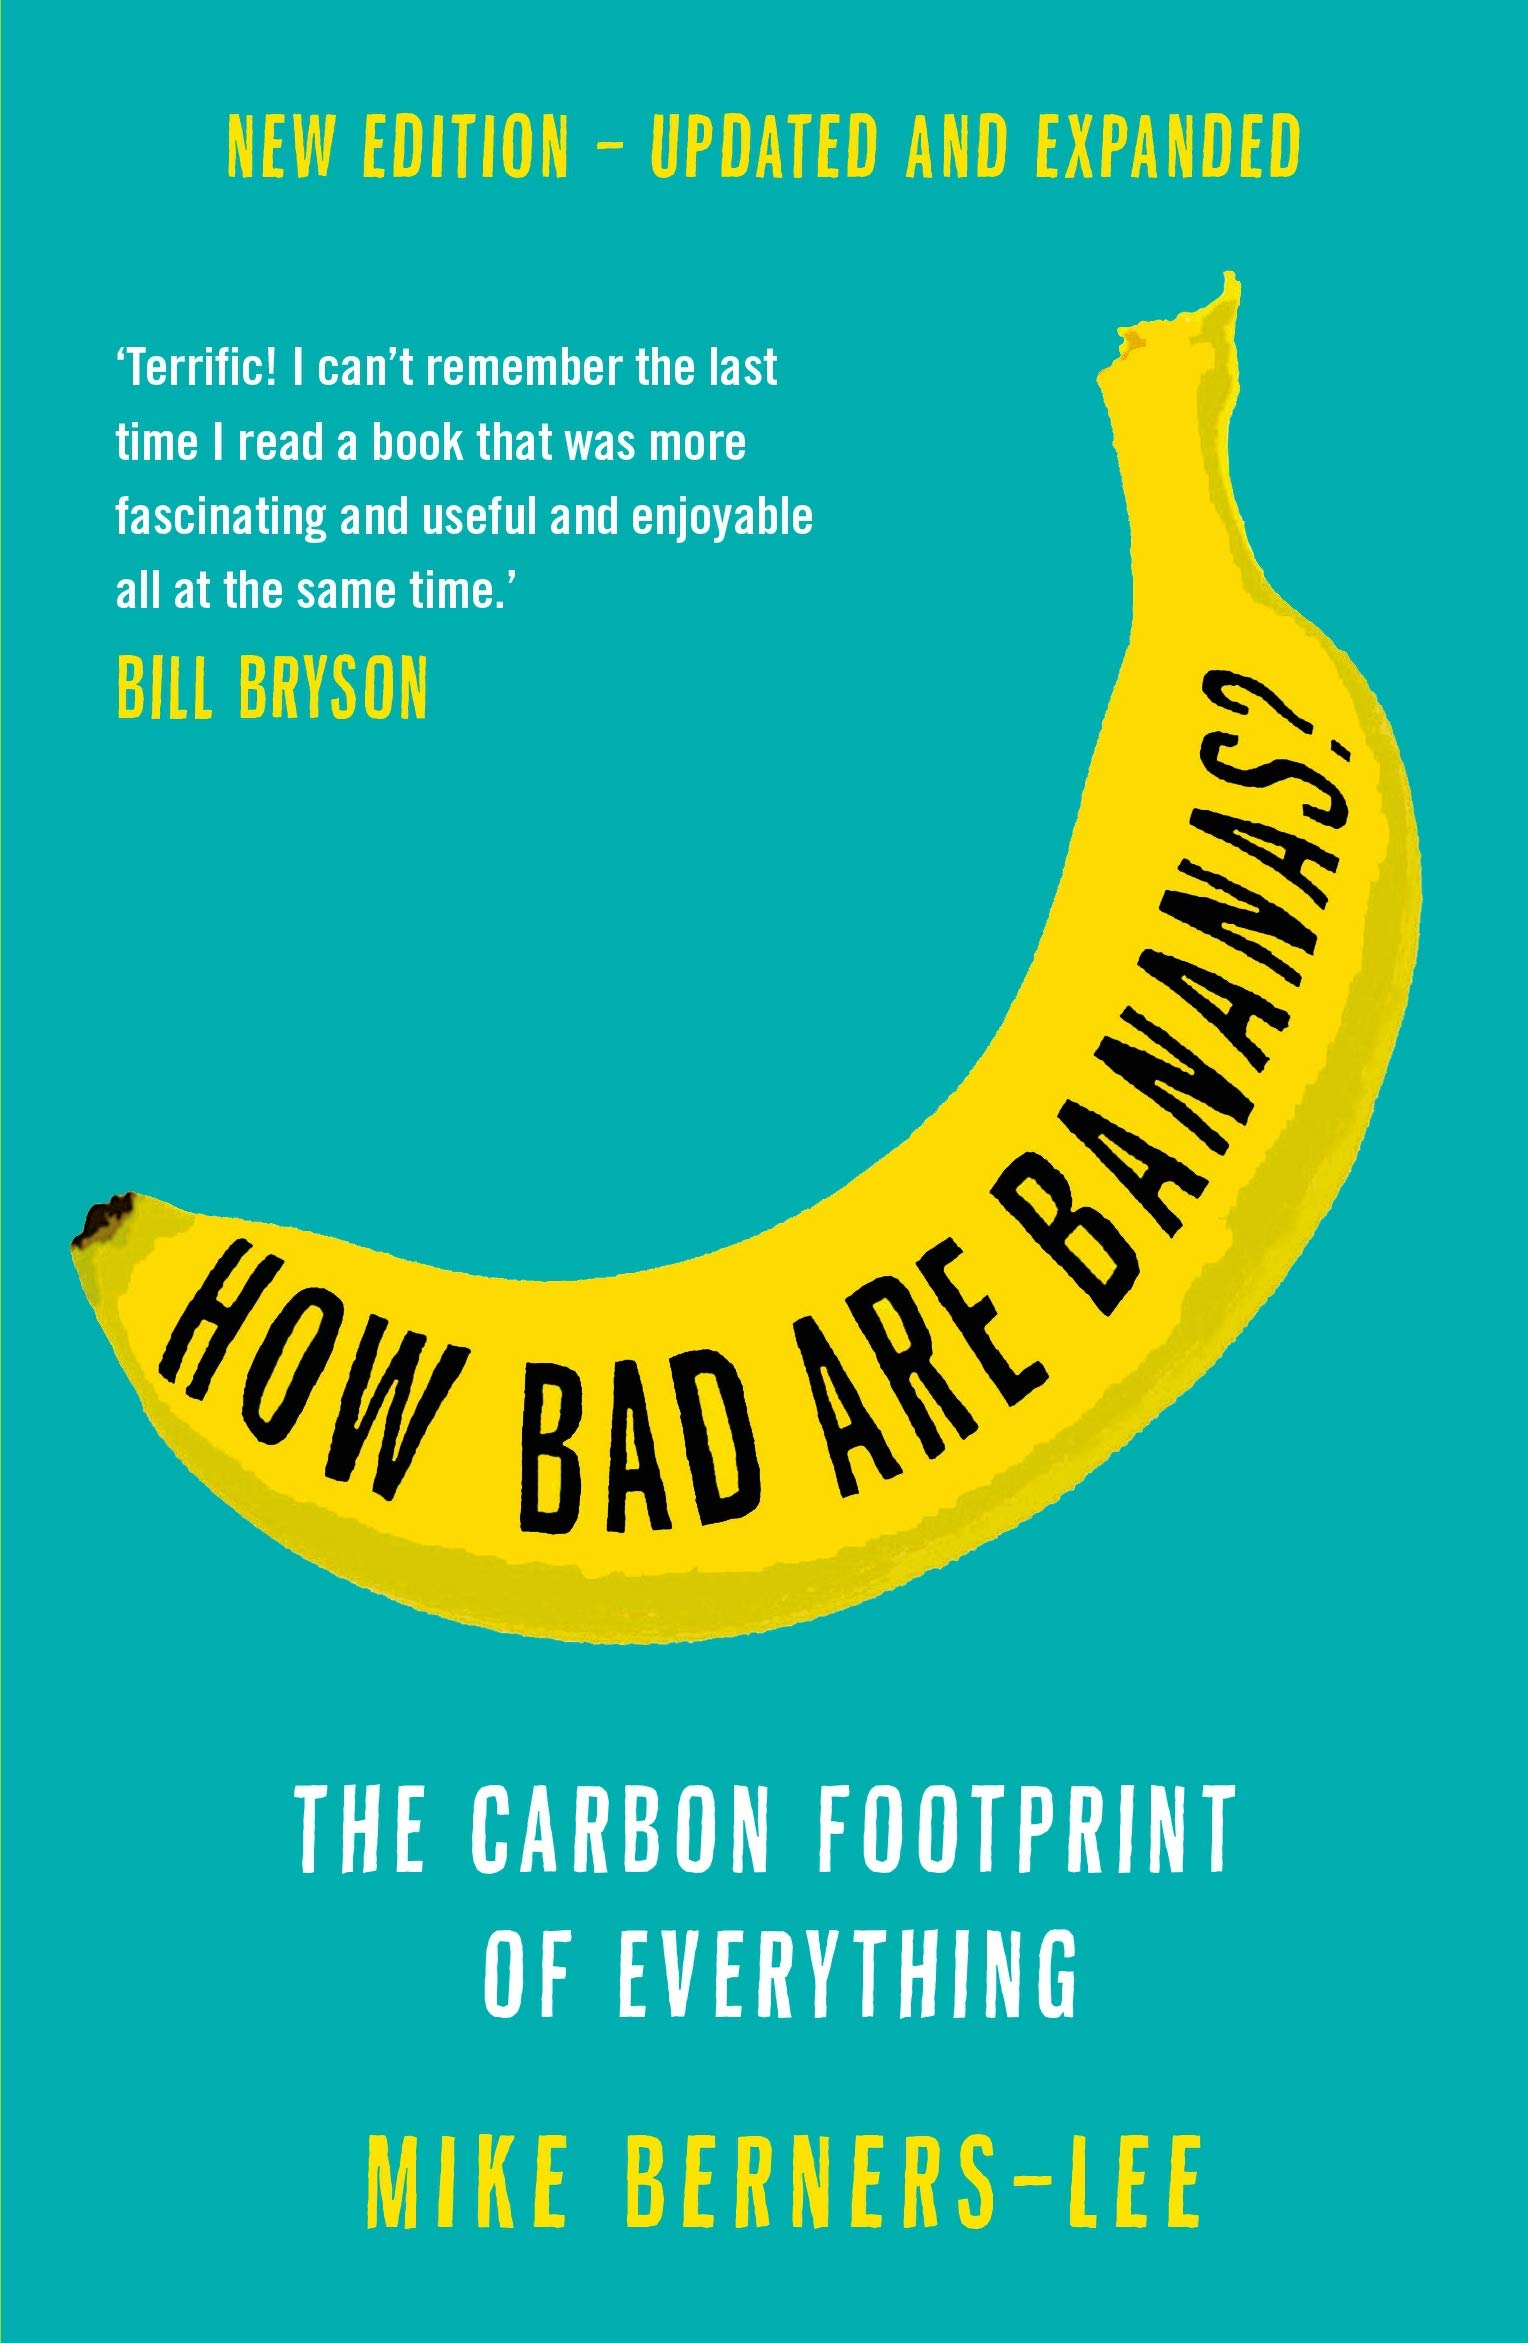 How Bad Are Bananas?: The carbon footprint of everything: Amazon.co.uk:  Berners-Lee, Mike: 9781788163811: Books